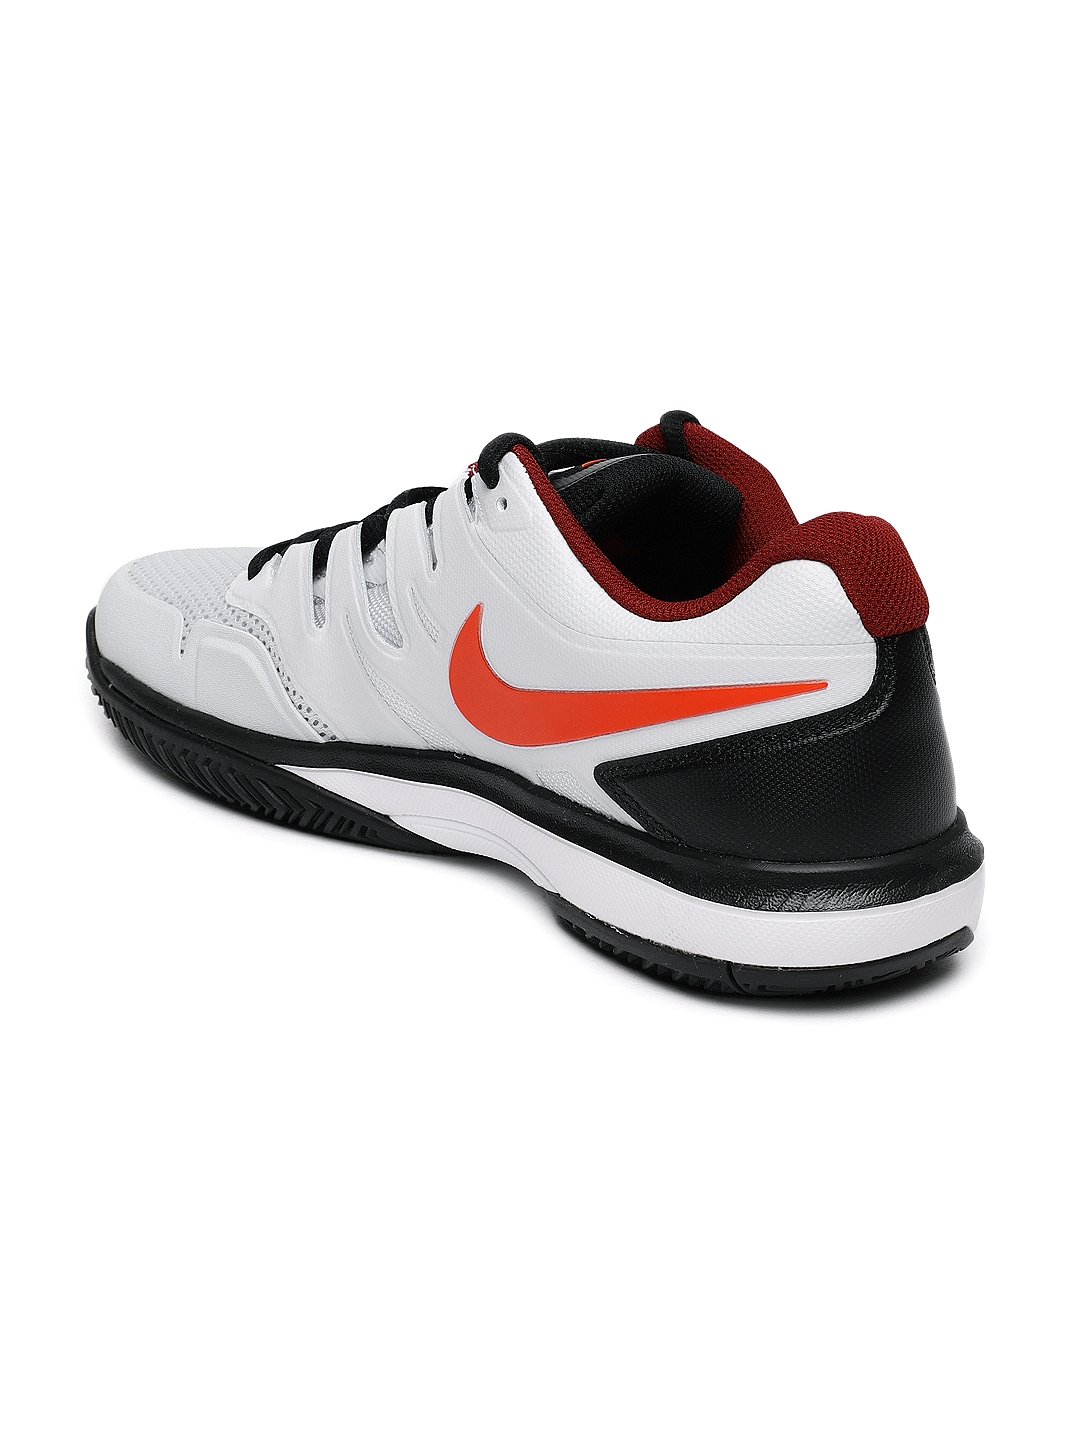 new product 20ba4 38779 Nike Men White Air Zoom Prestige HC Tennis Shoes